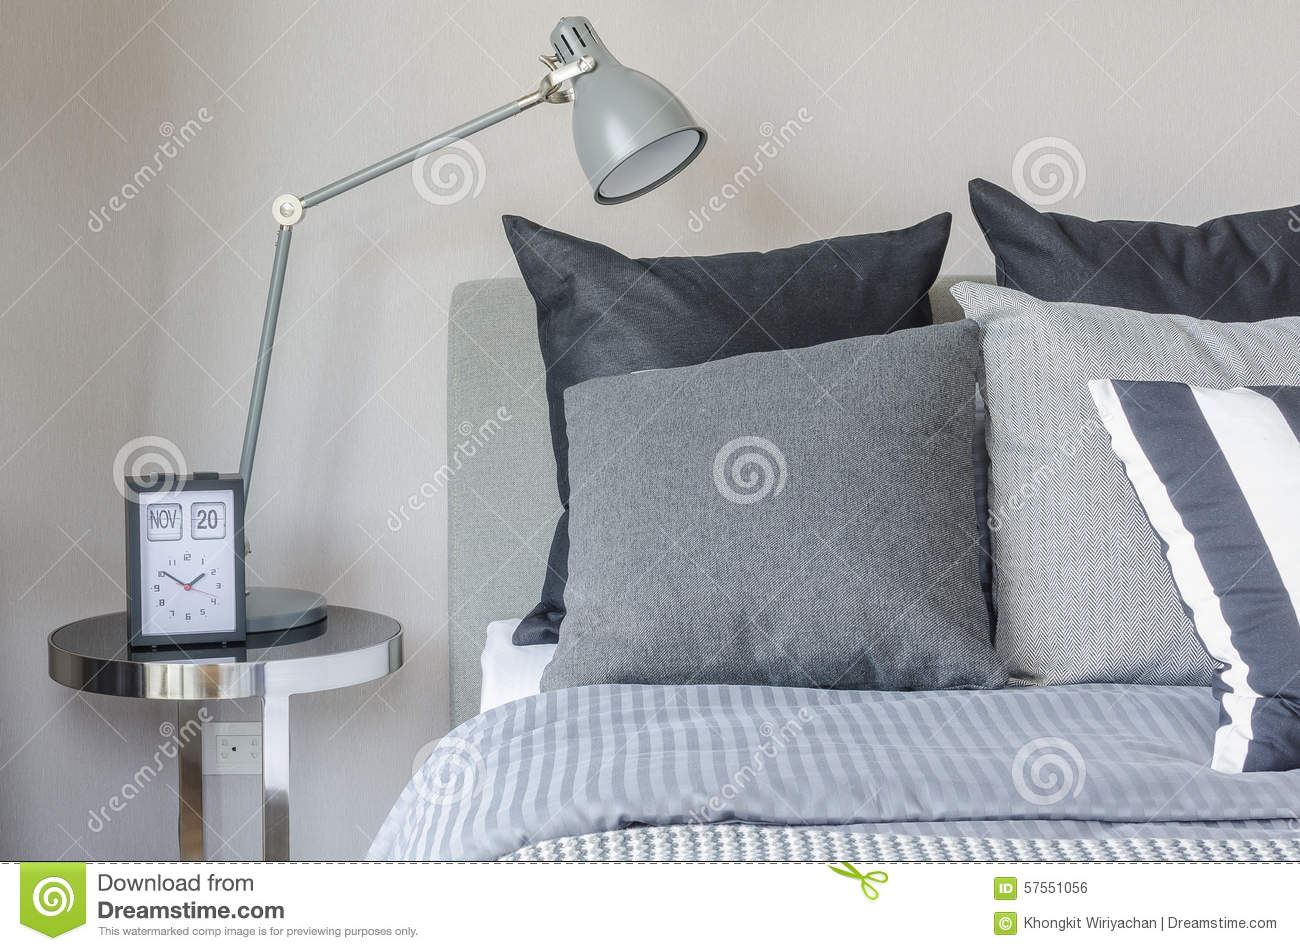 Modern Grey Lamp With Alarm Clock On Side Table In Bedroom